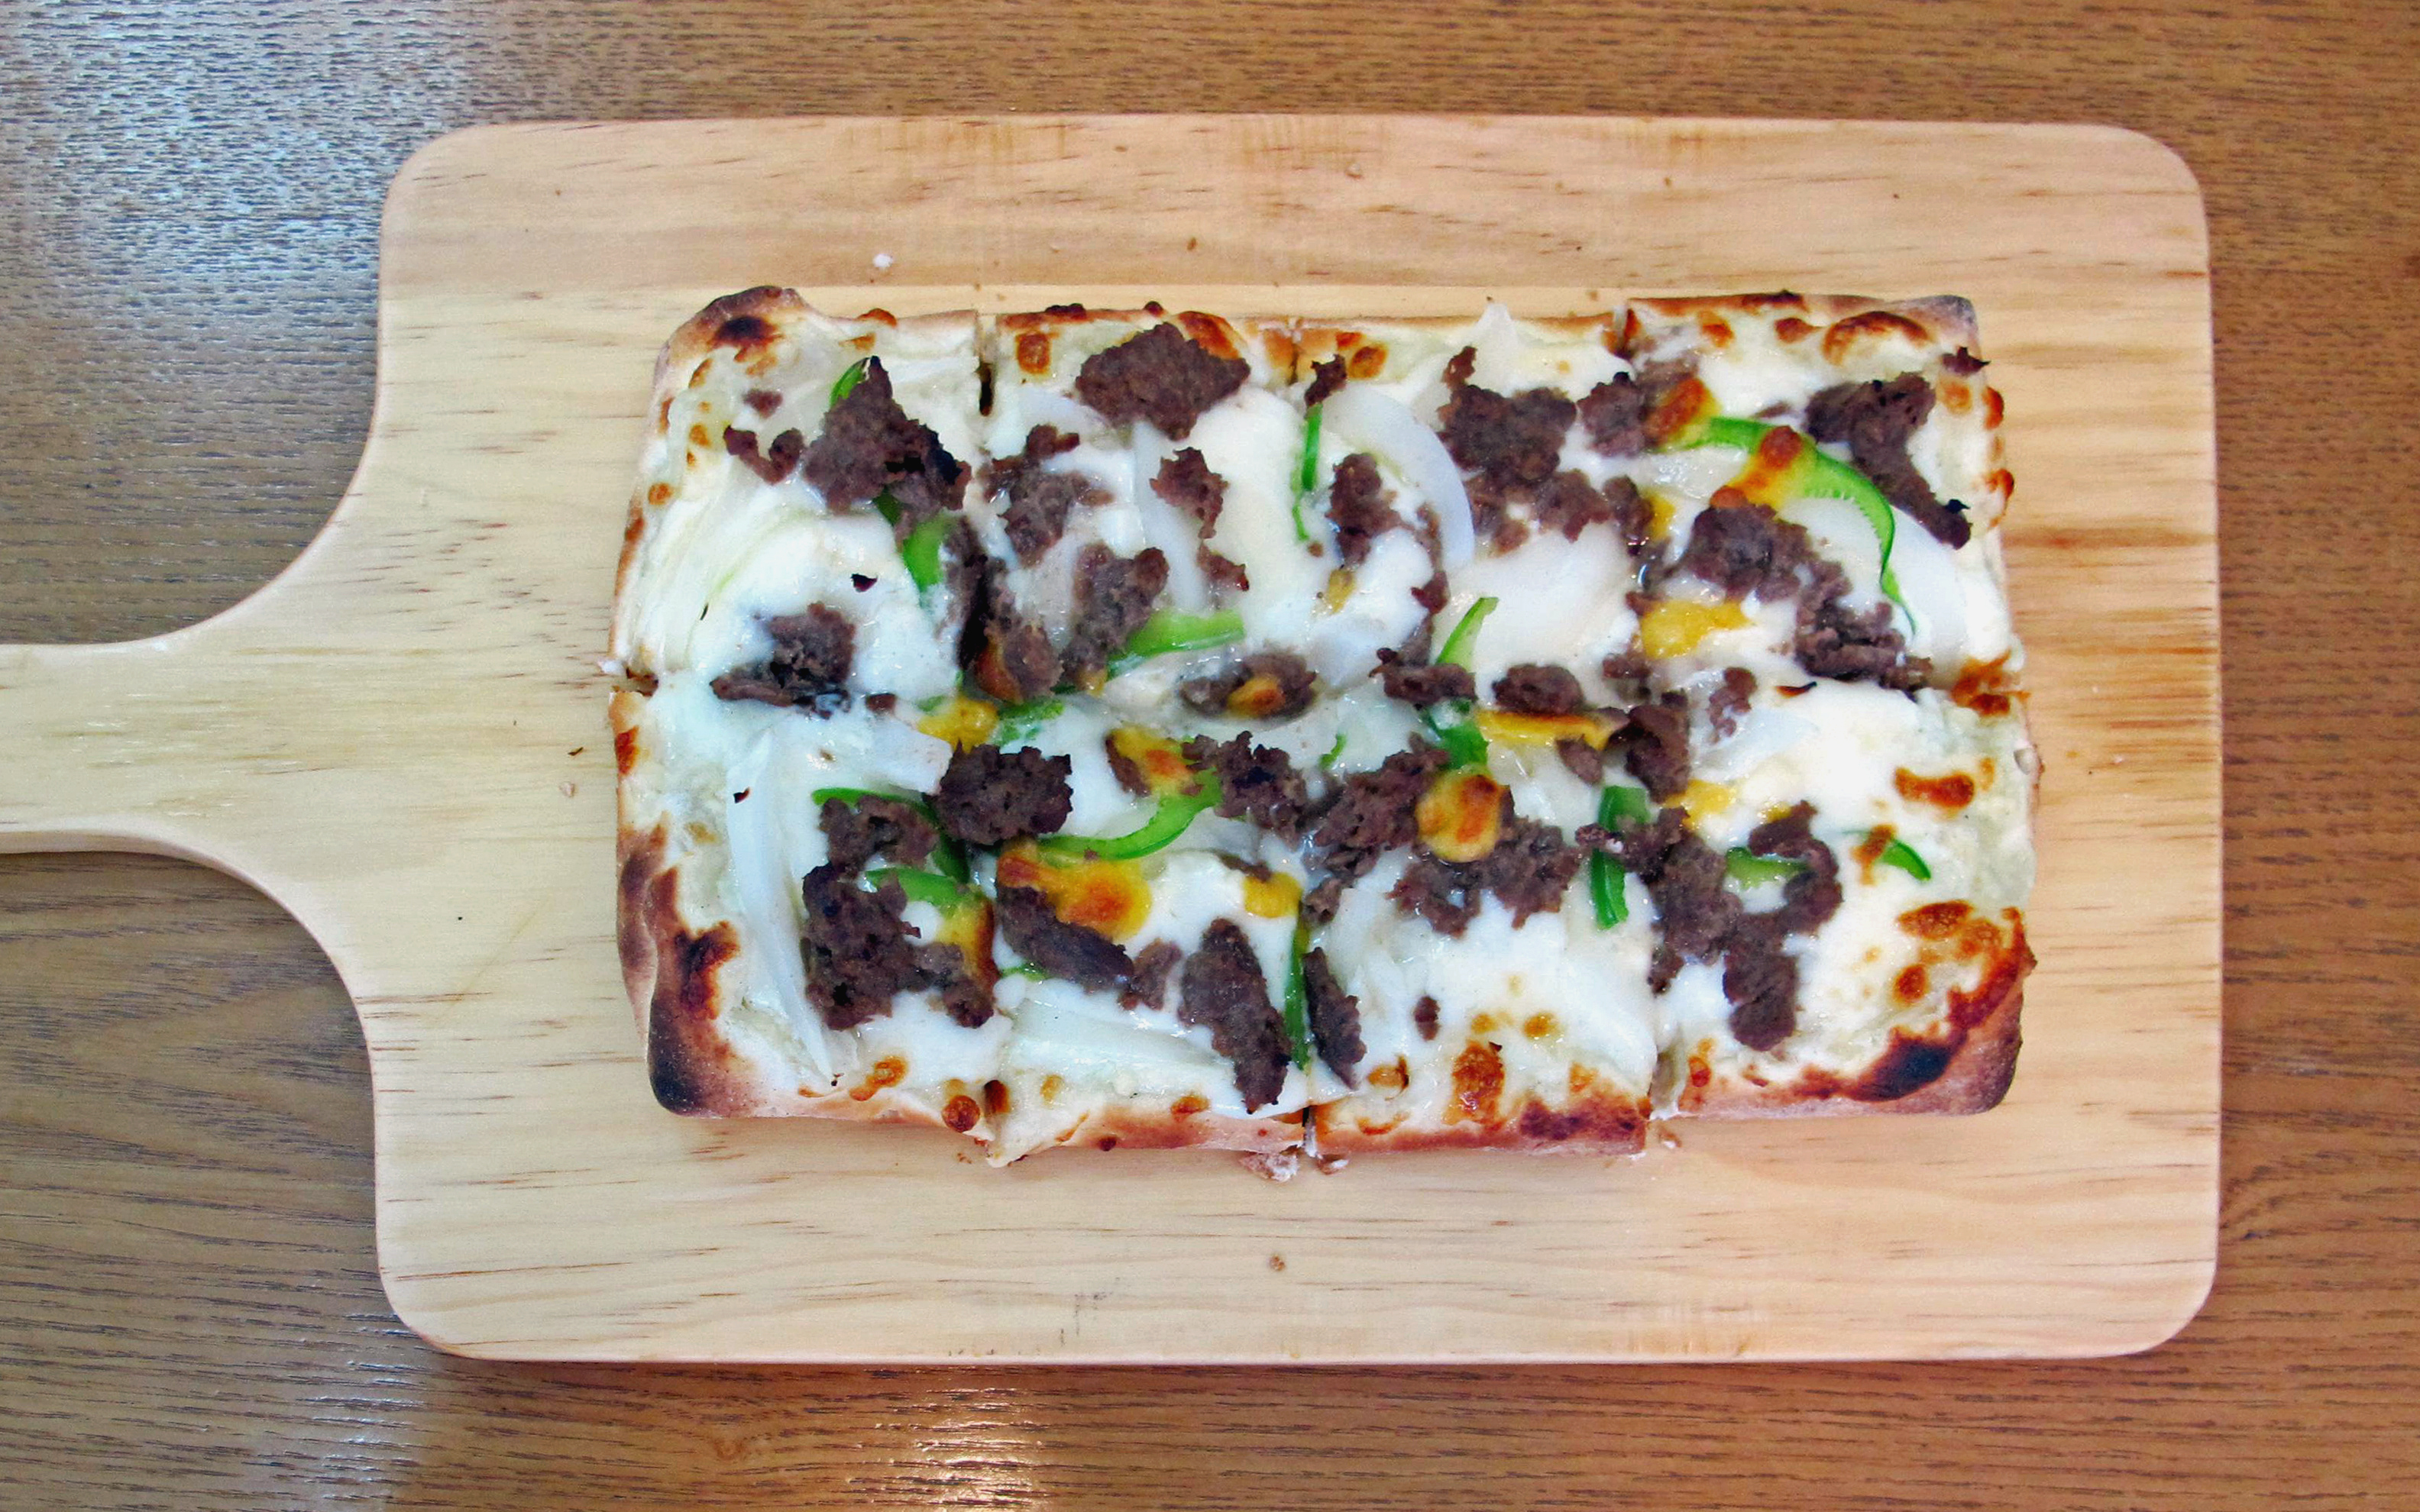 Jisoo Kim's bulgogi pizza. (Photo by Annette Ekin)